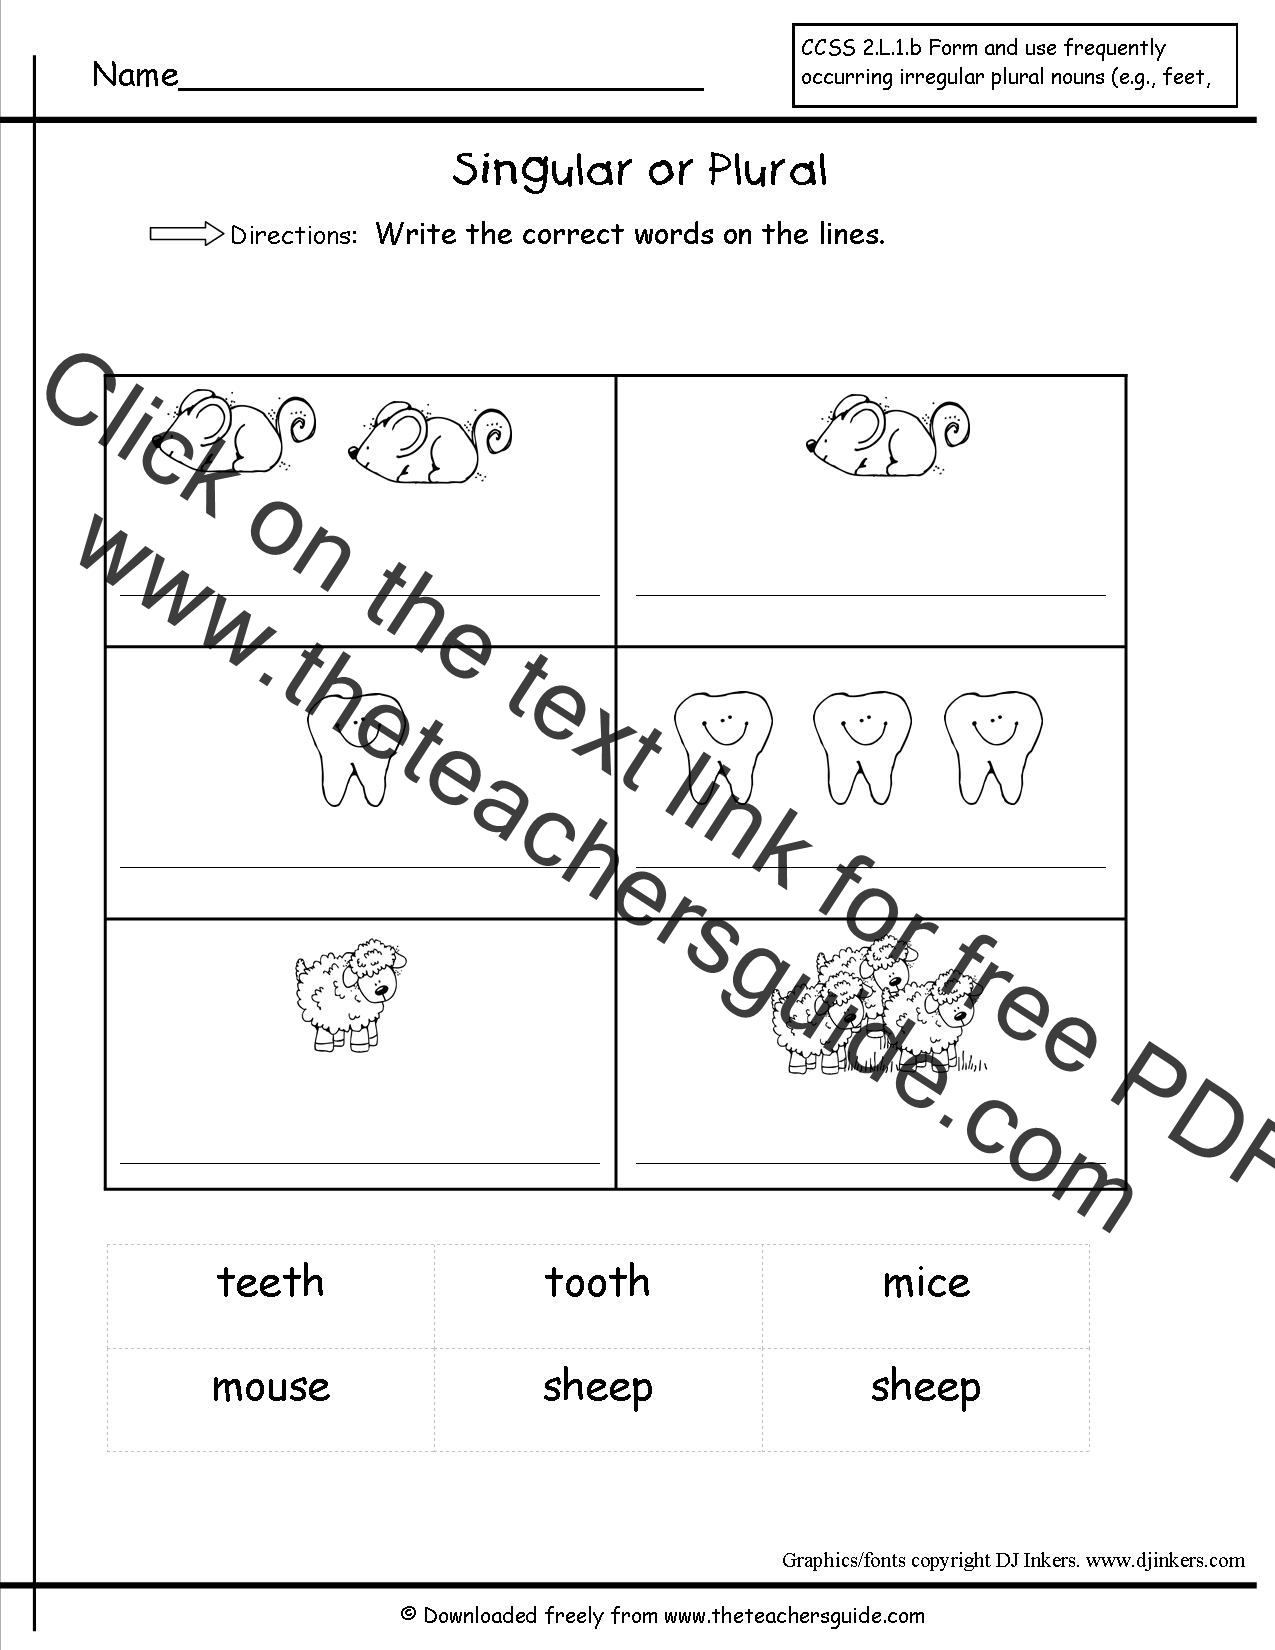 Worksheets Irregular Plural Nouns Worksheet singular and plural nouns worksheets from the teachers guide irregular worksheet